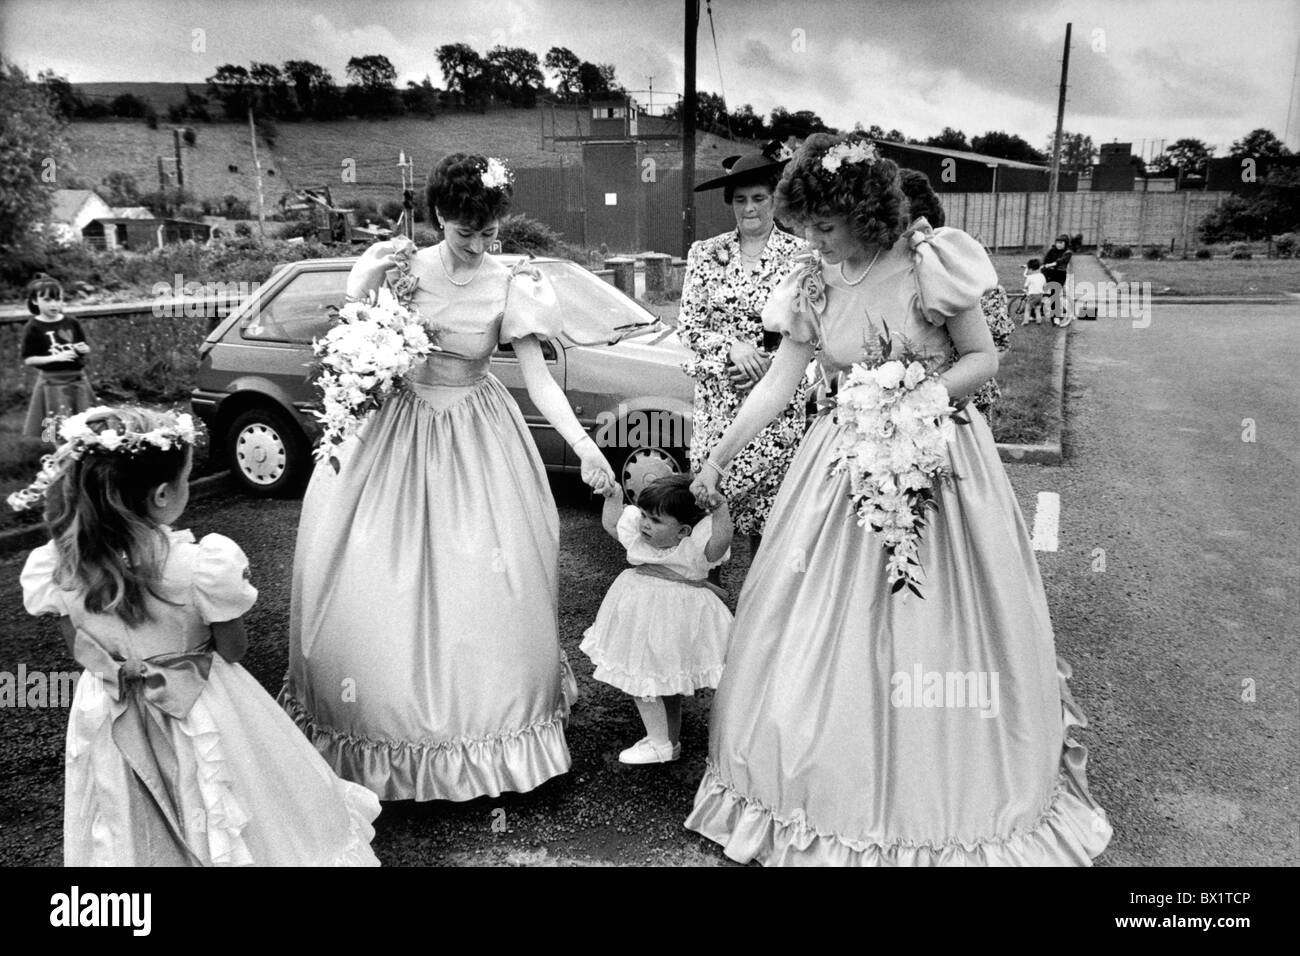 Wedding party at Aughnacloy, County Tyrone. The British Army border post behind. Northern Ireland 1990 - Stock Image